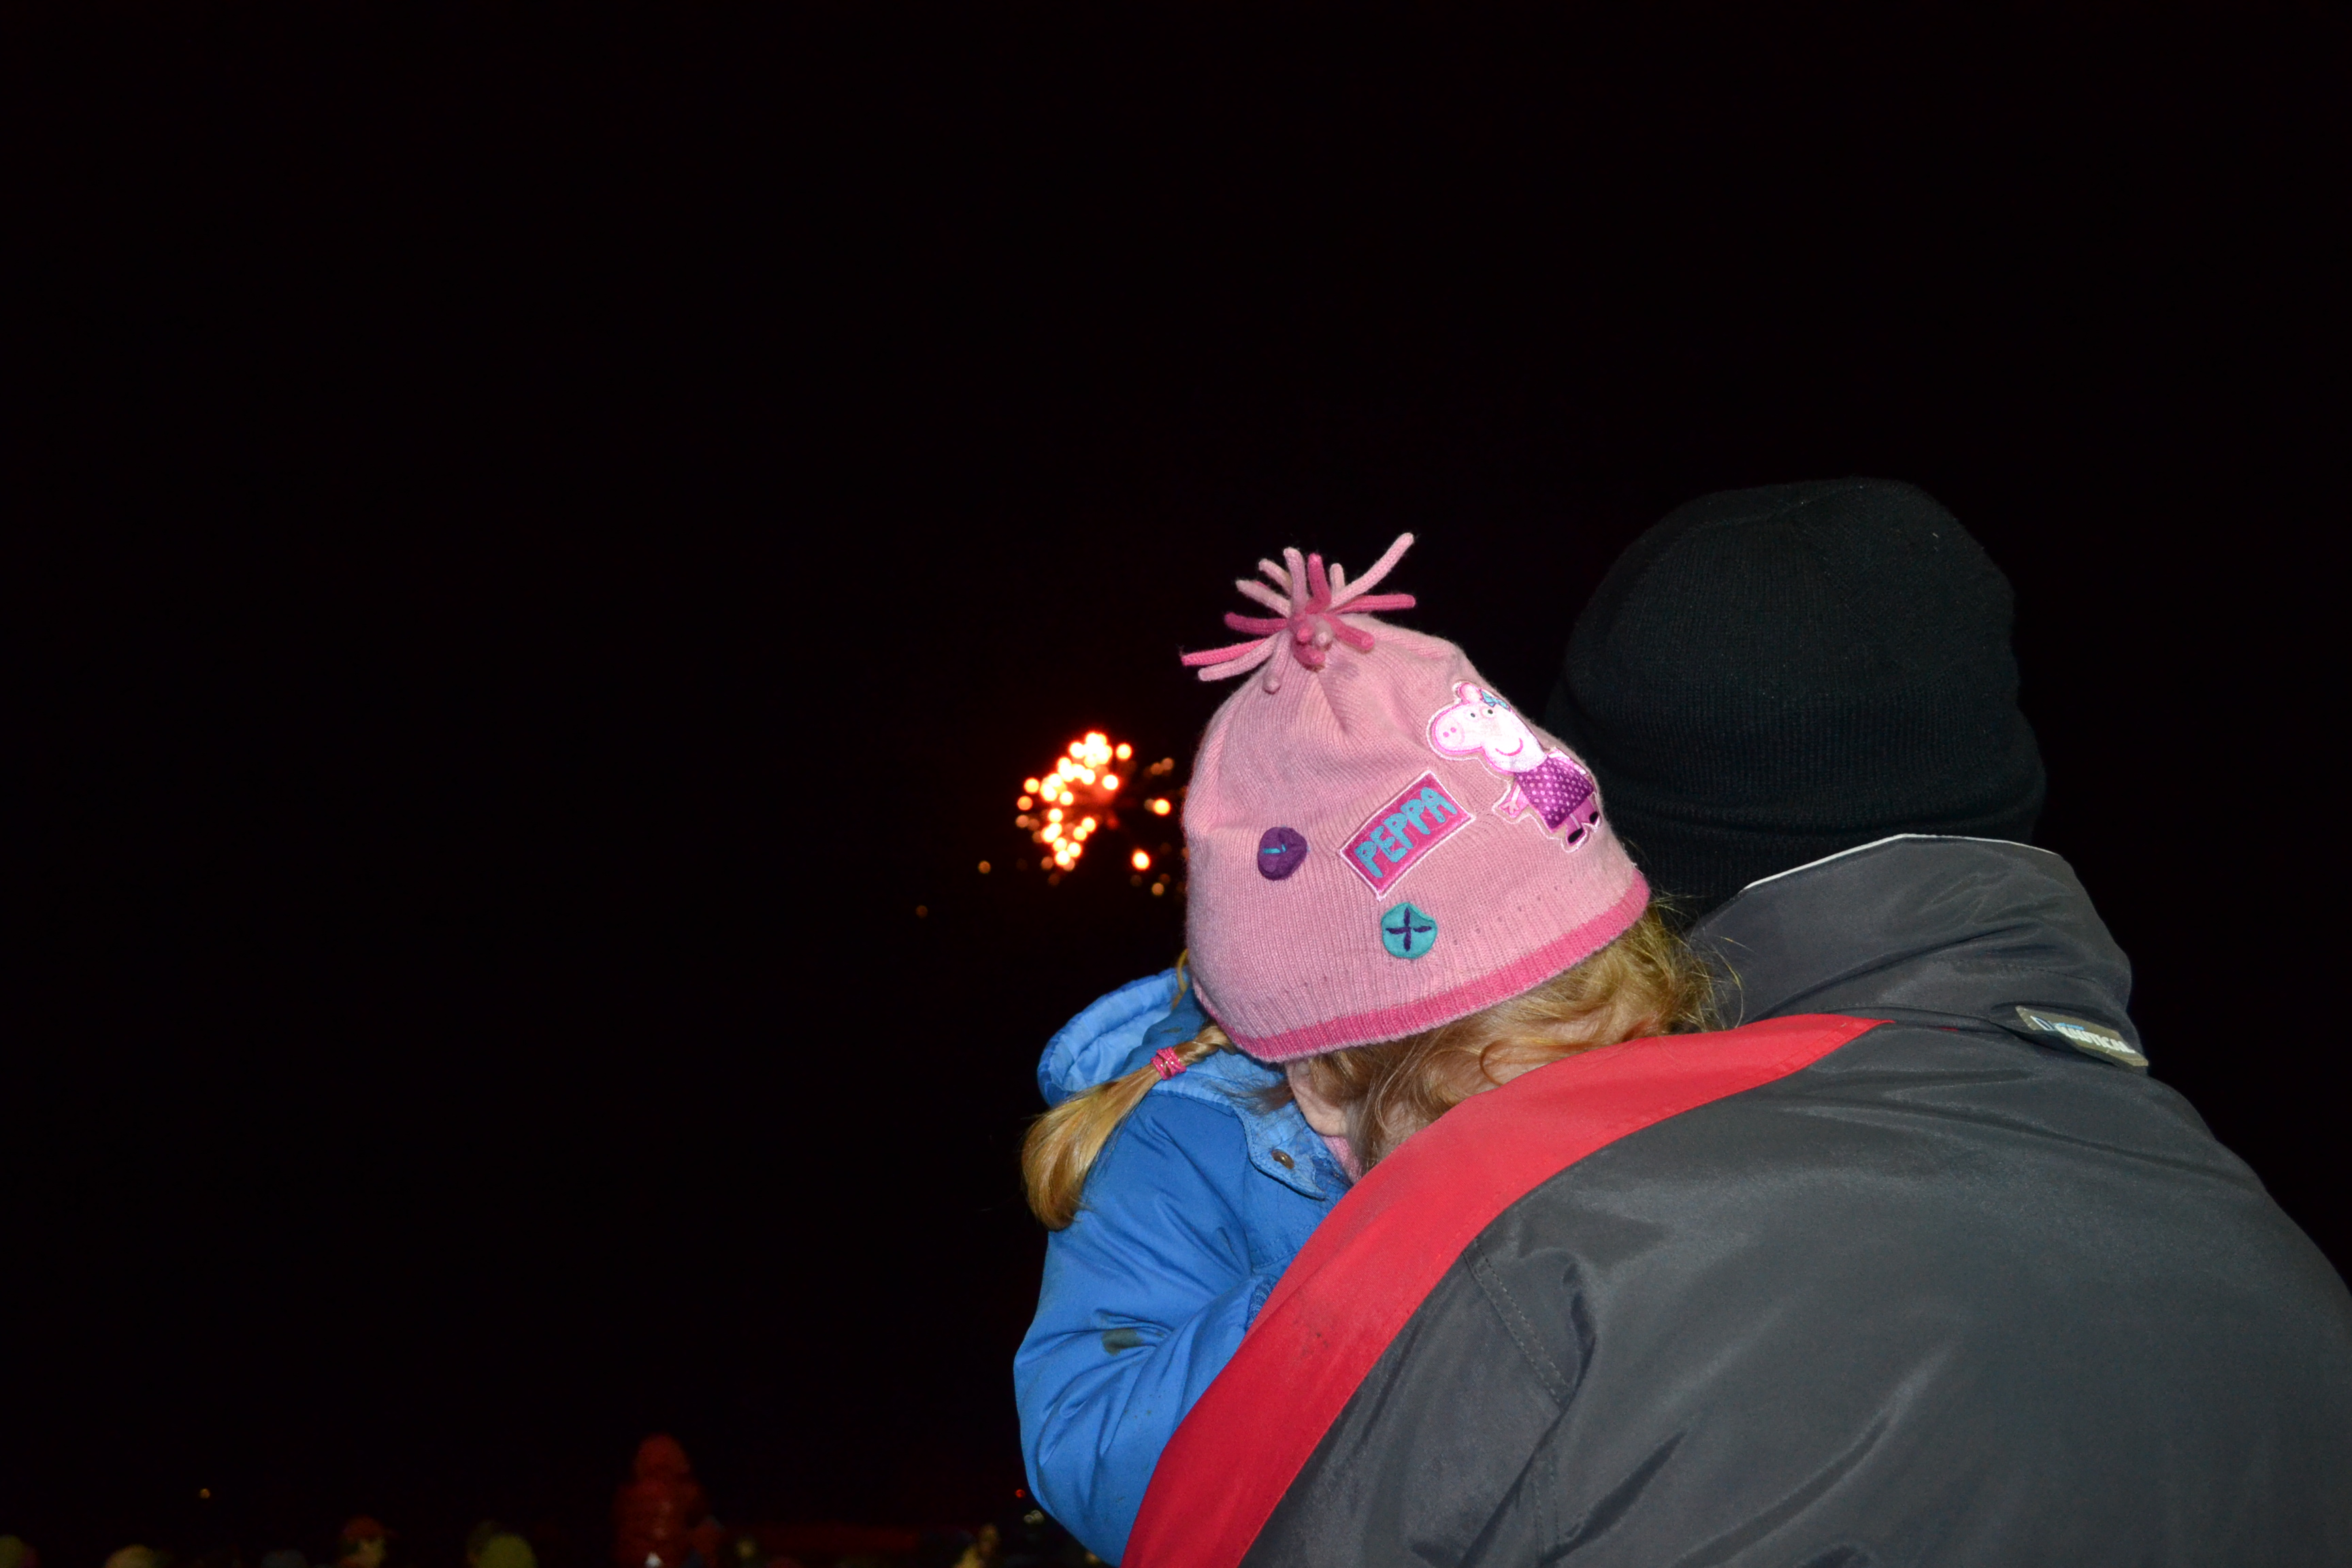 Fireworks Night